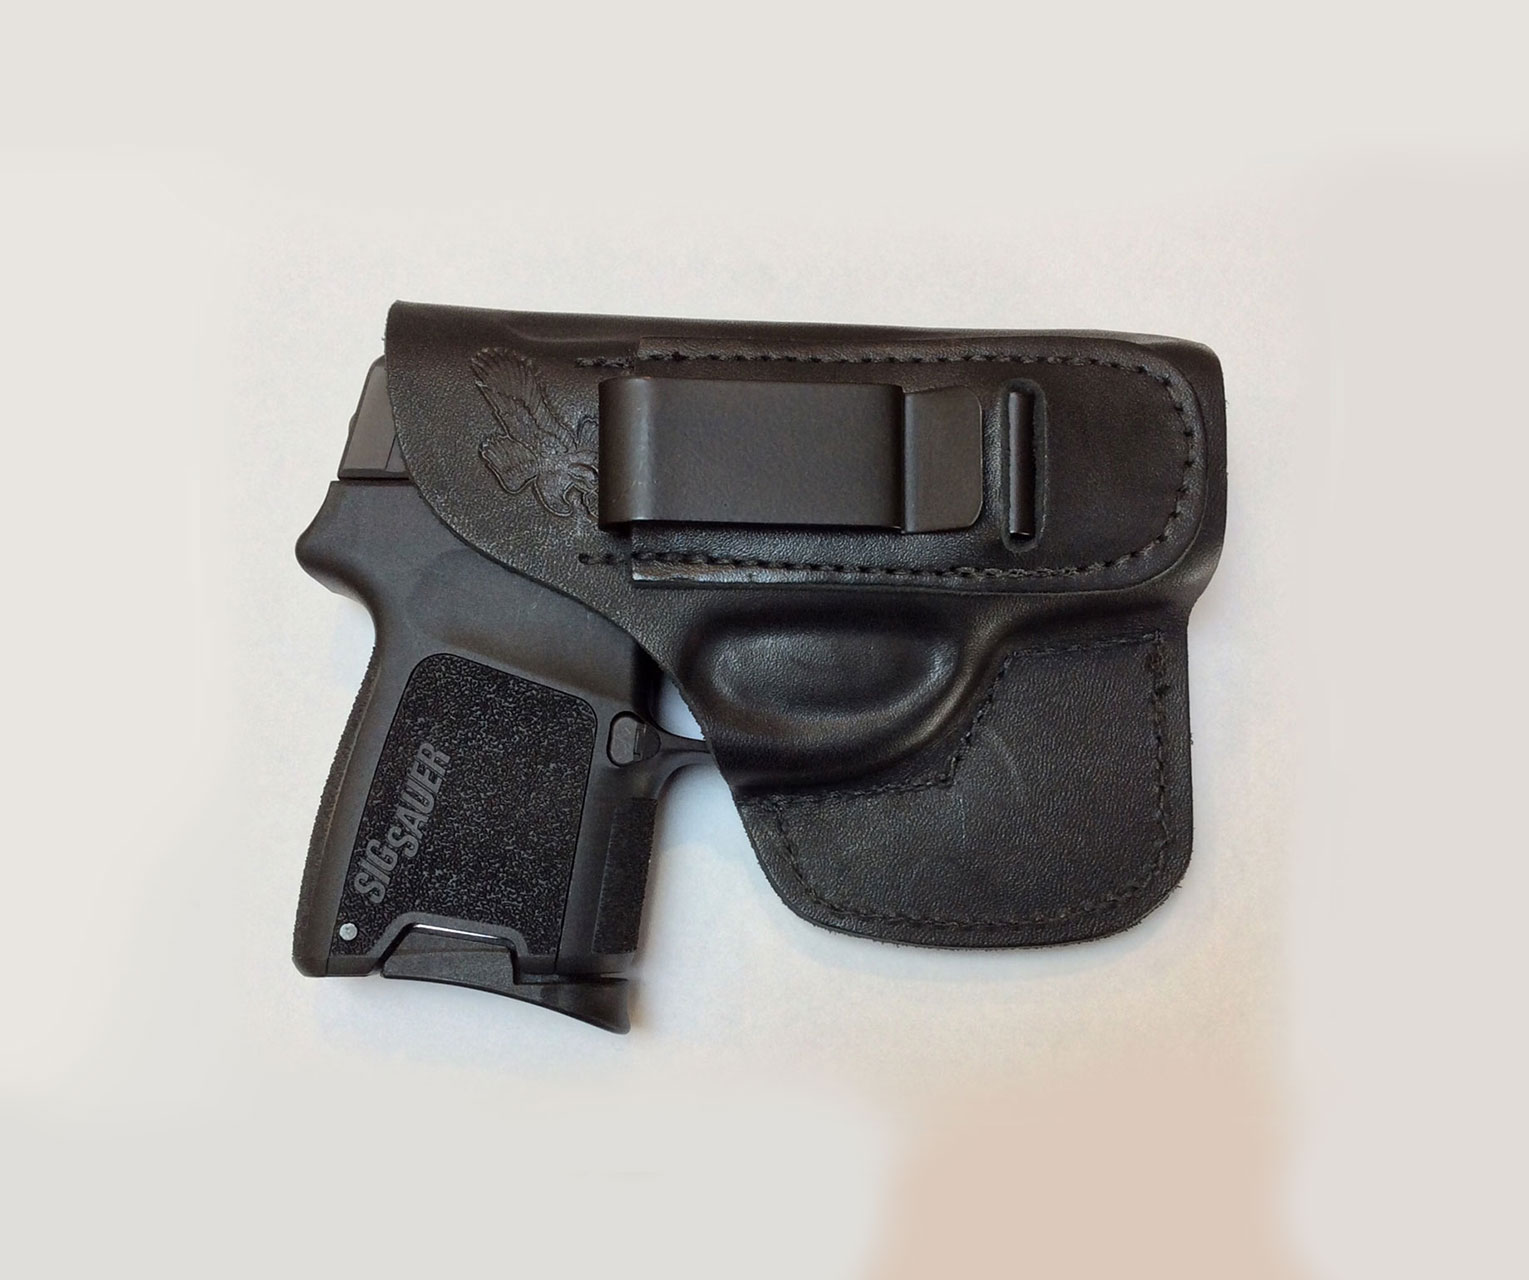 Review & Giveaway: Braids IWB & Pocket Holster for the Sig Sauer P290